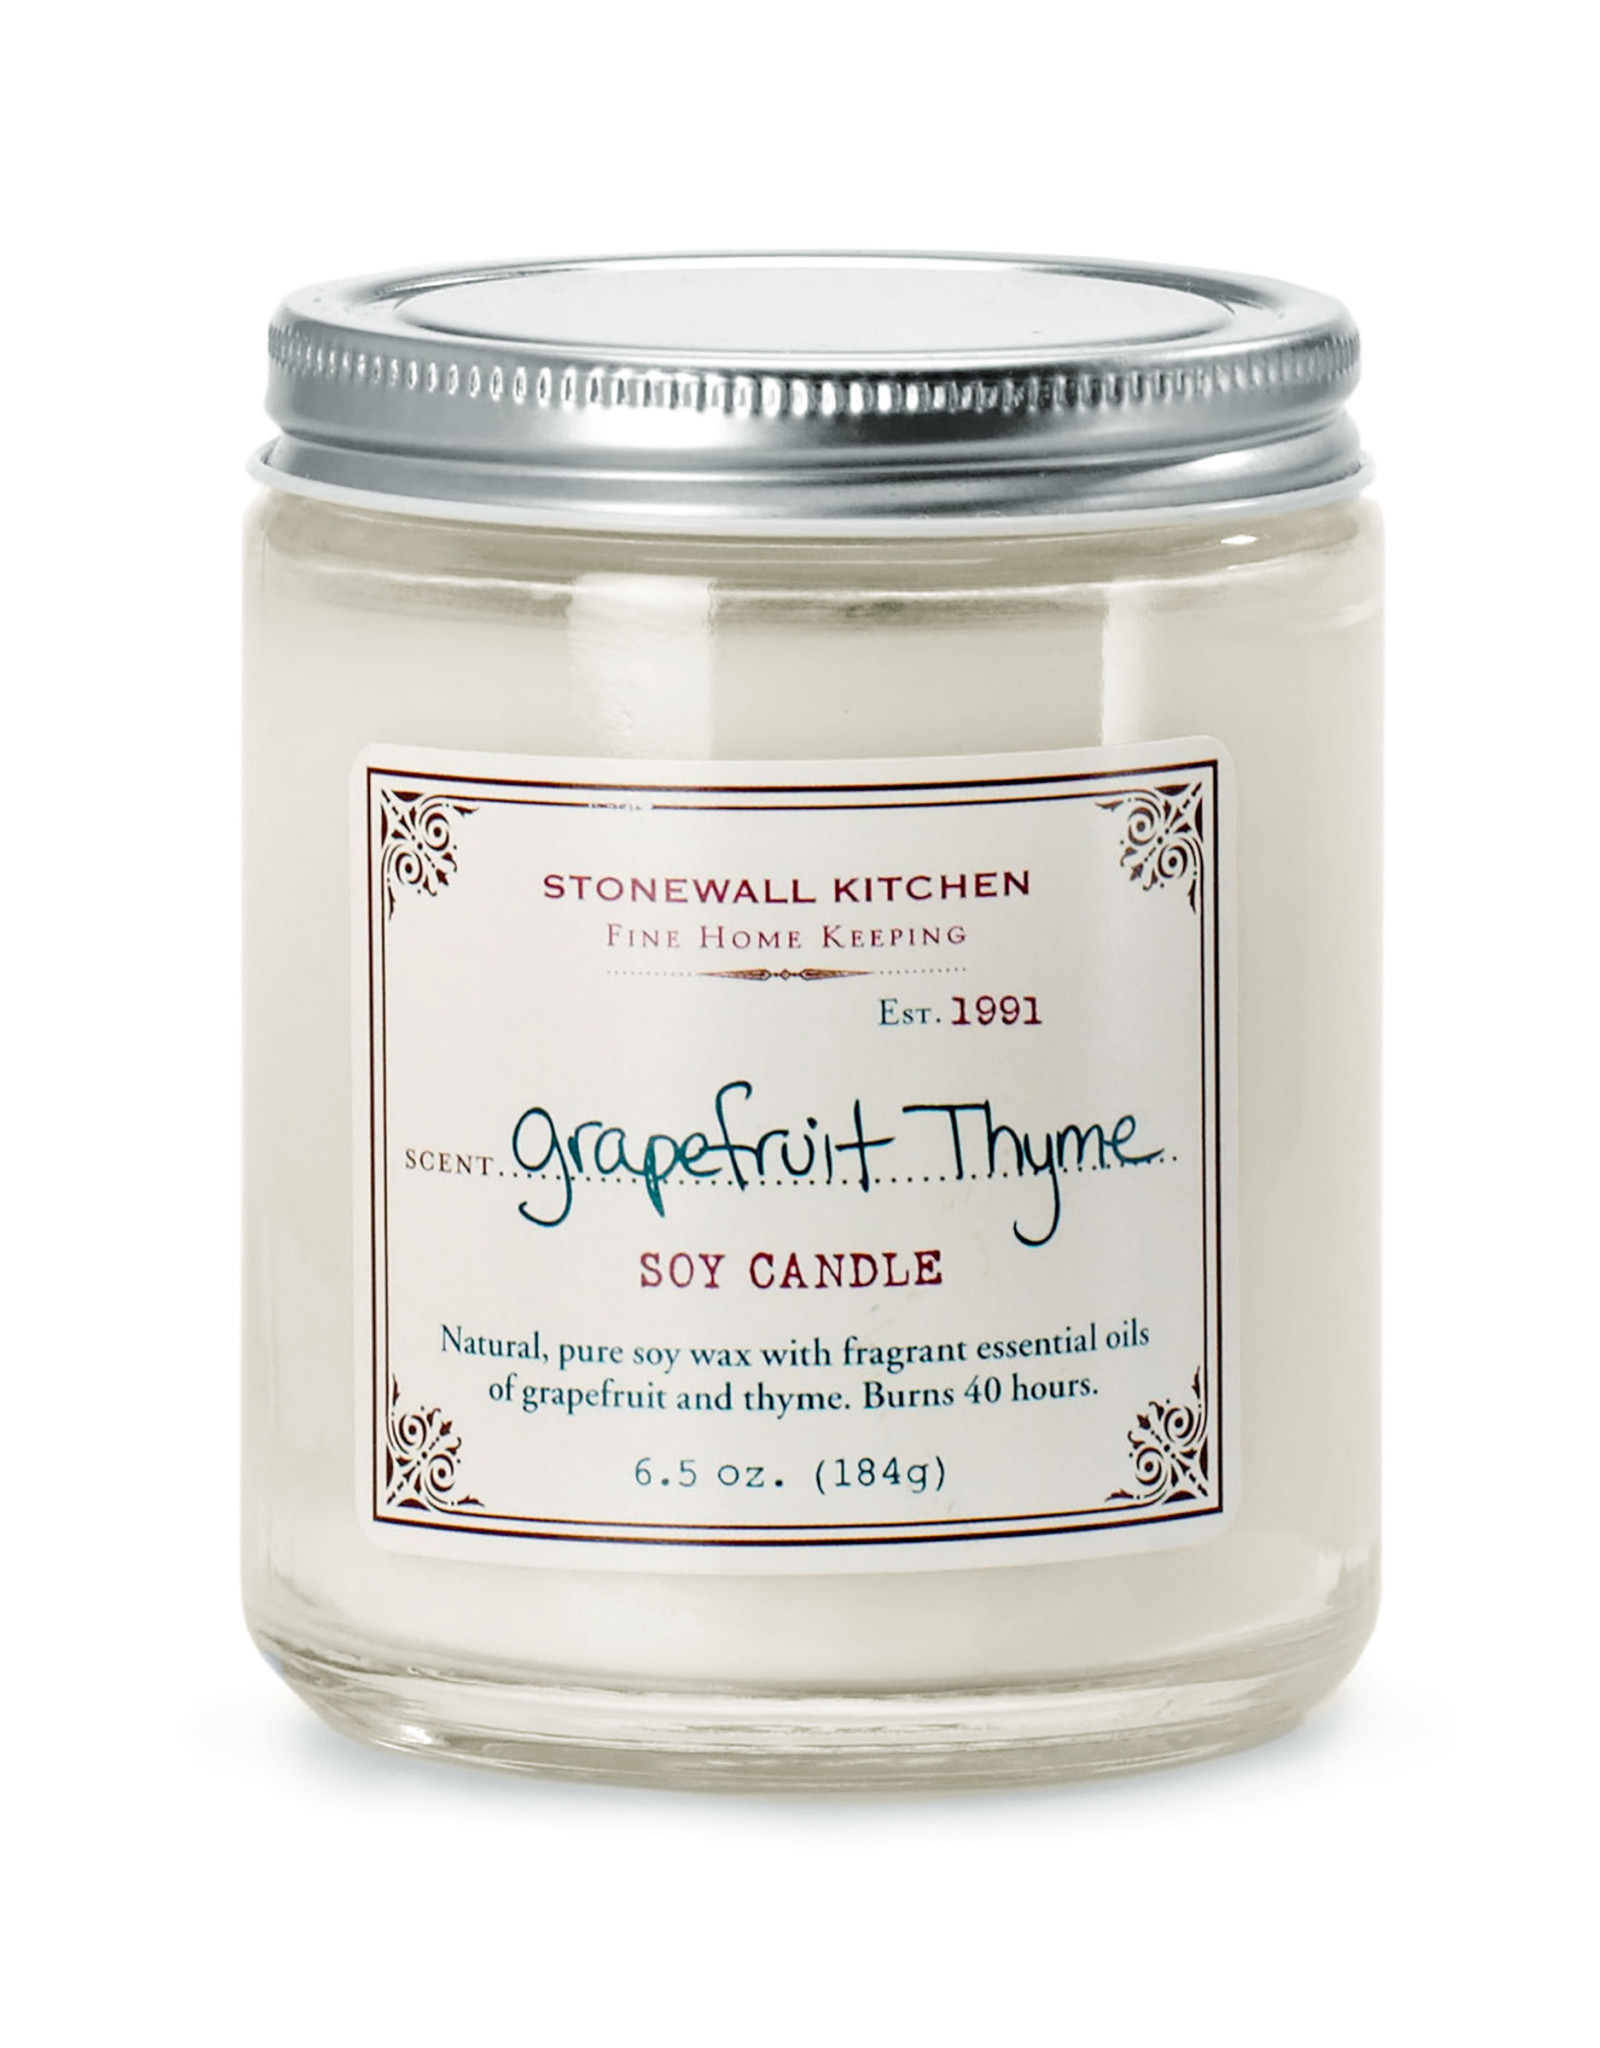 Stonewall Kitchen Grapefruit Thyme Candle